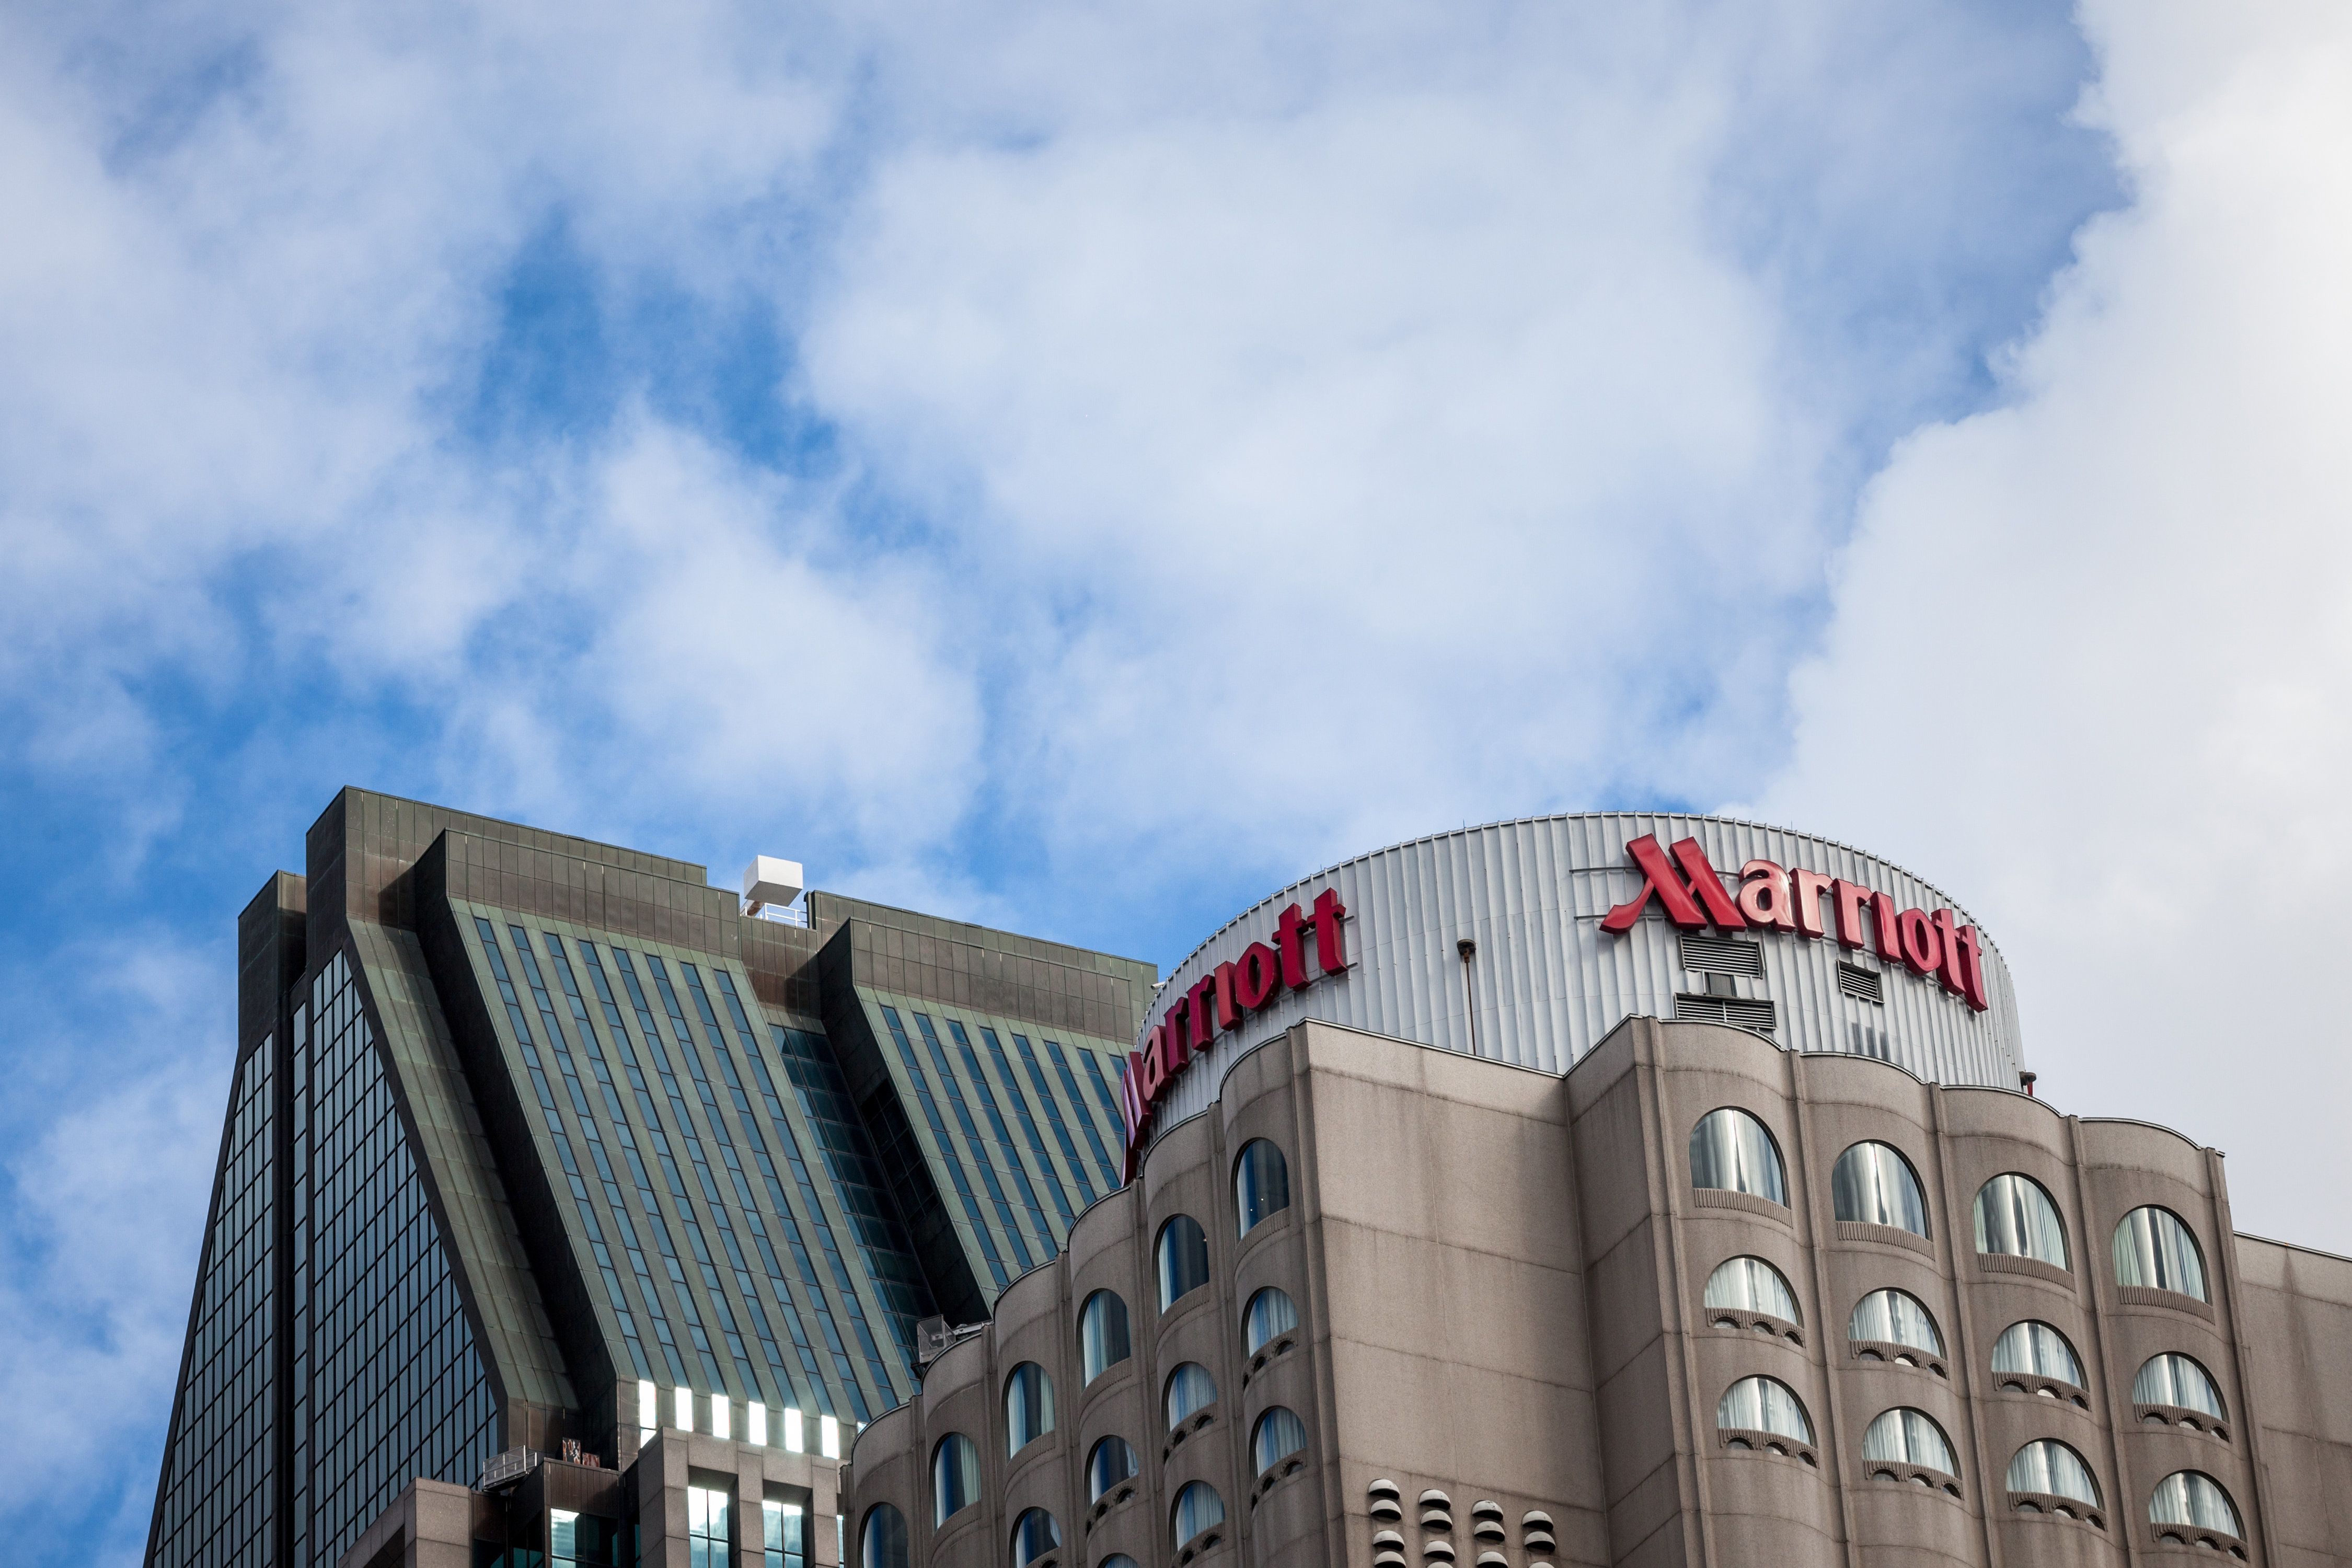 American Hotel & Lodging Association, of which Marriott is a member, has made no secret of its opposition to short-term r